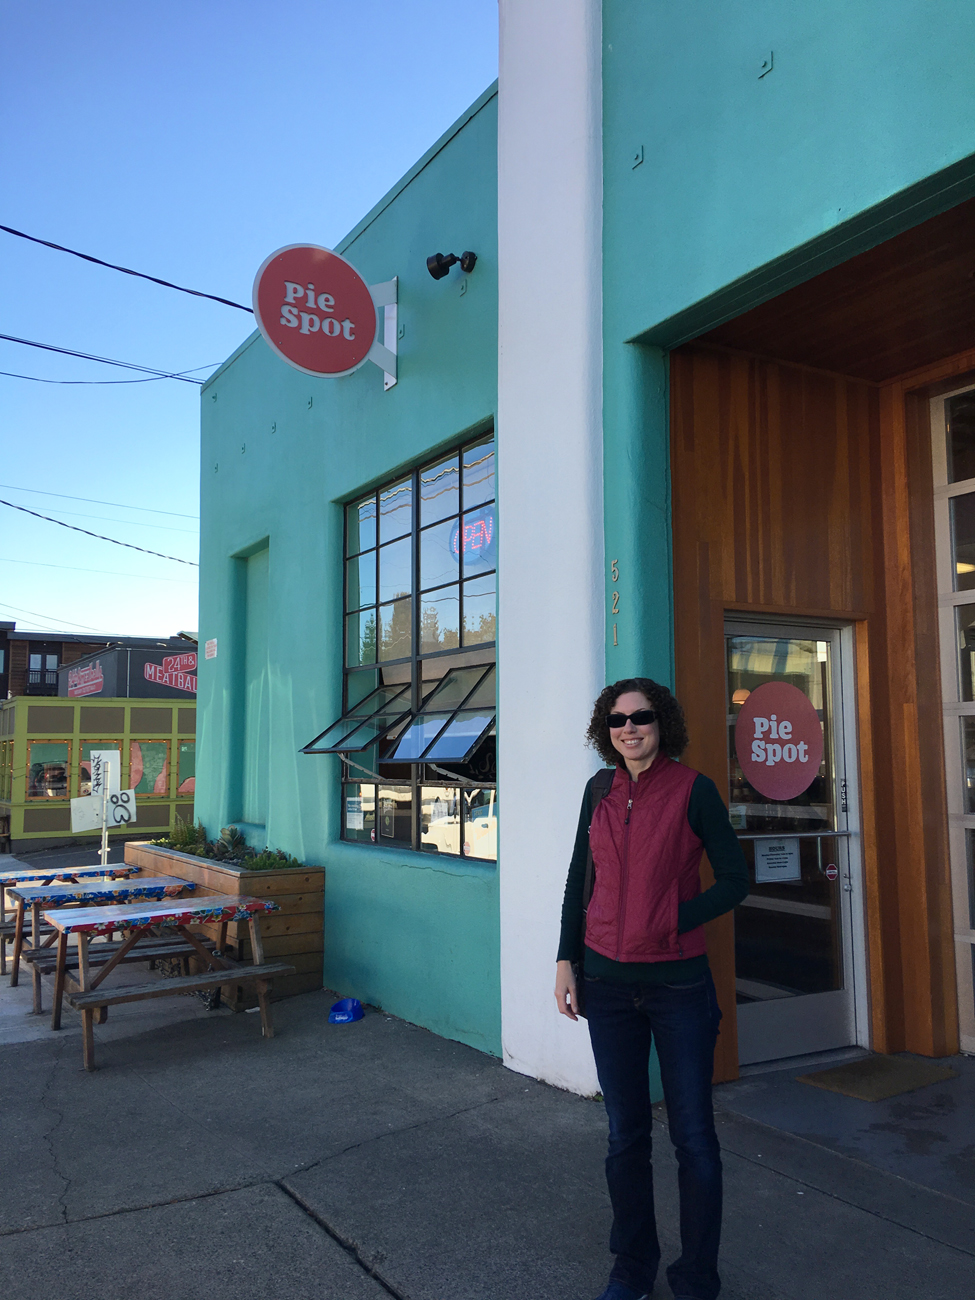 Christina standing in front of the Pie Spot in Portland